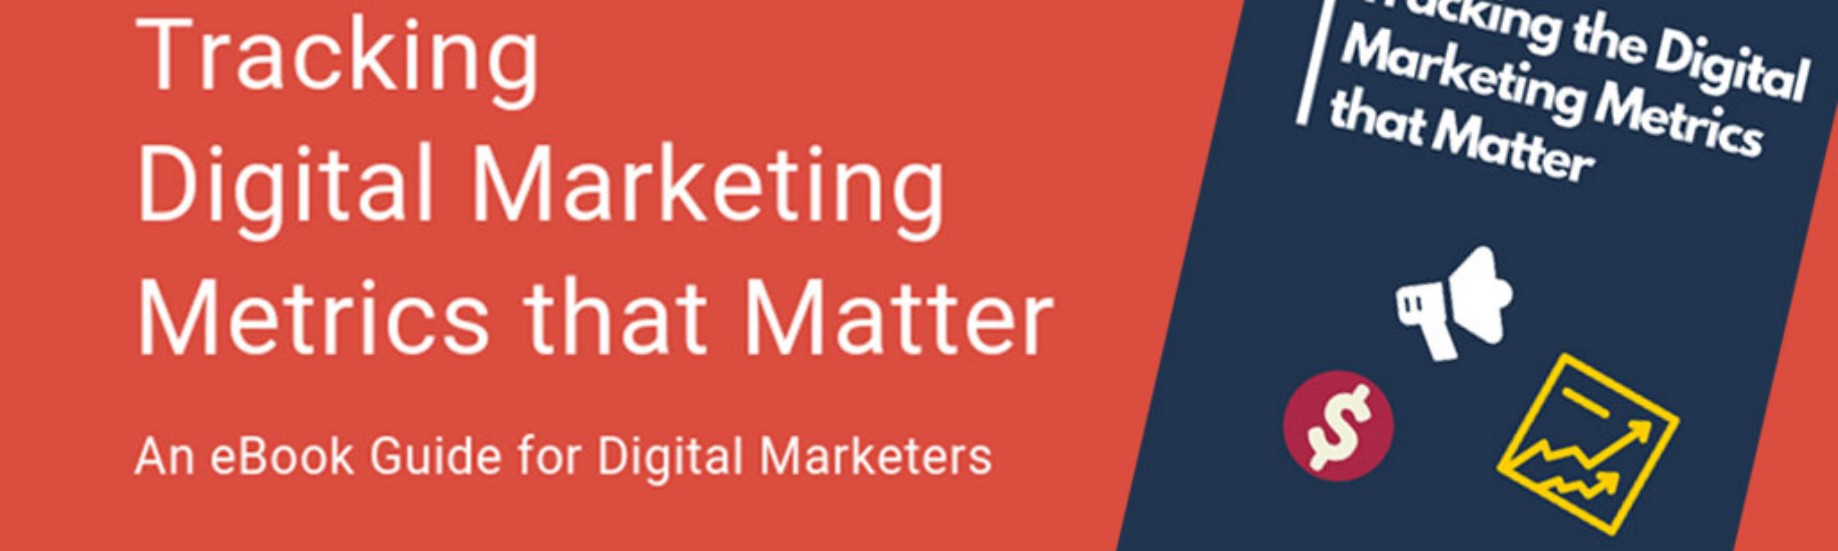 A Guide to Tracking the Digital Marketing Metrics that Matter - New